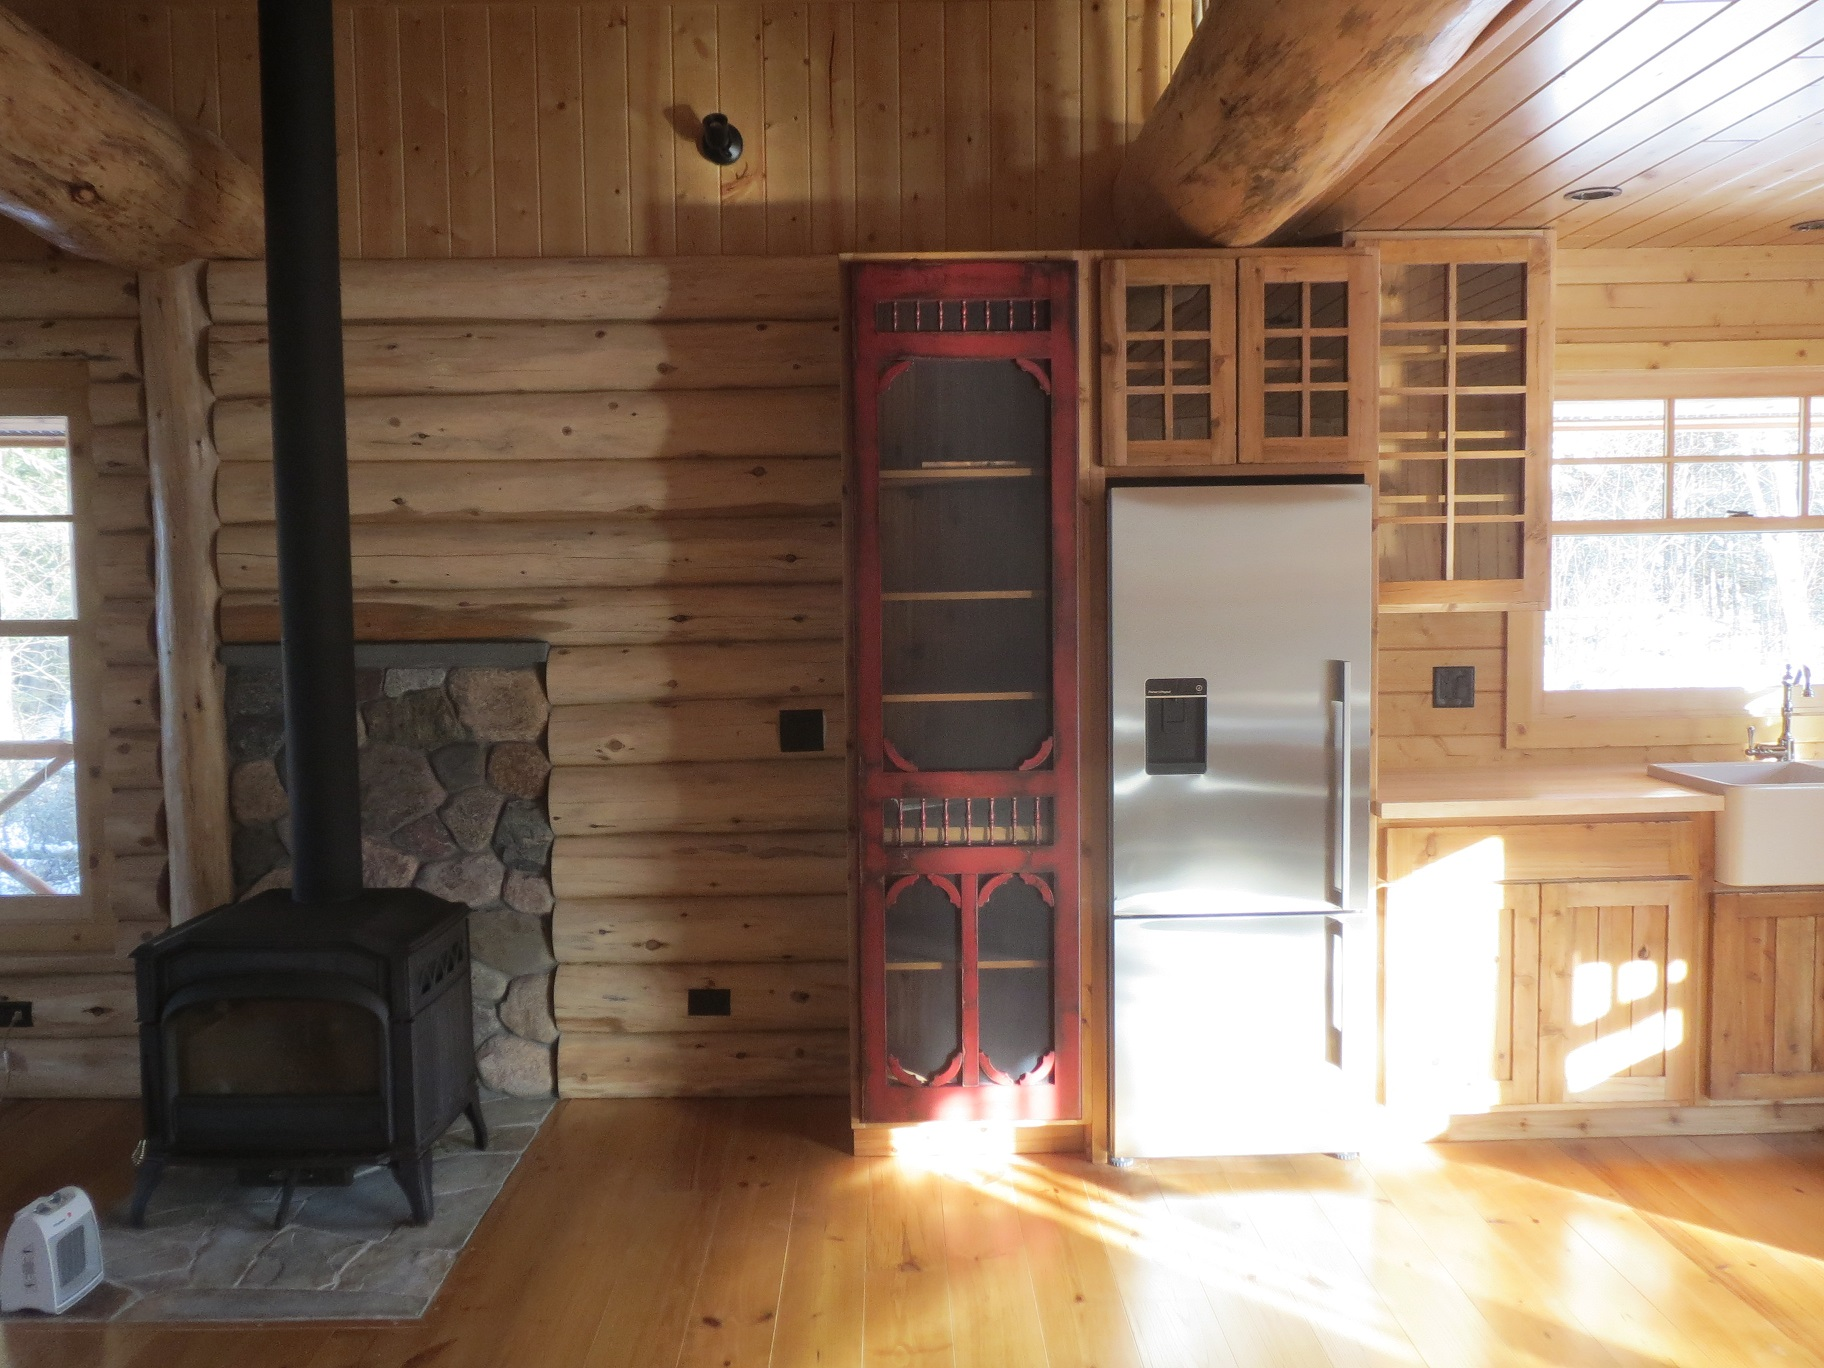 Red screen door on cabinets next to the wood stove in the living room